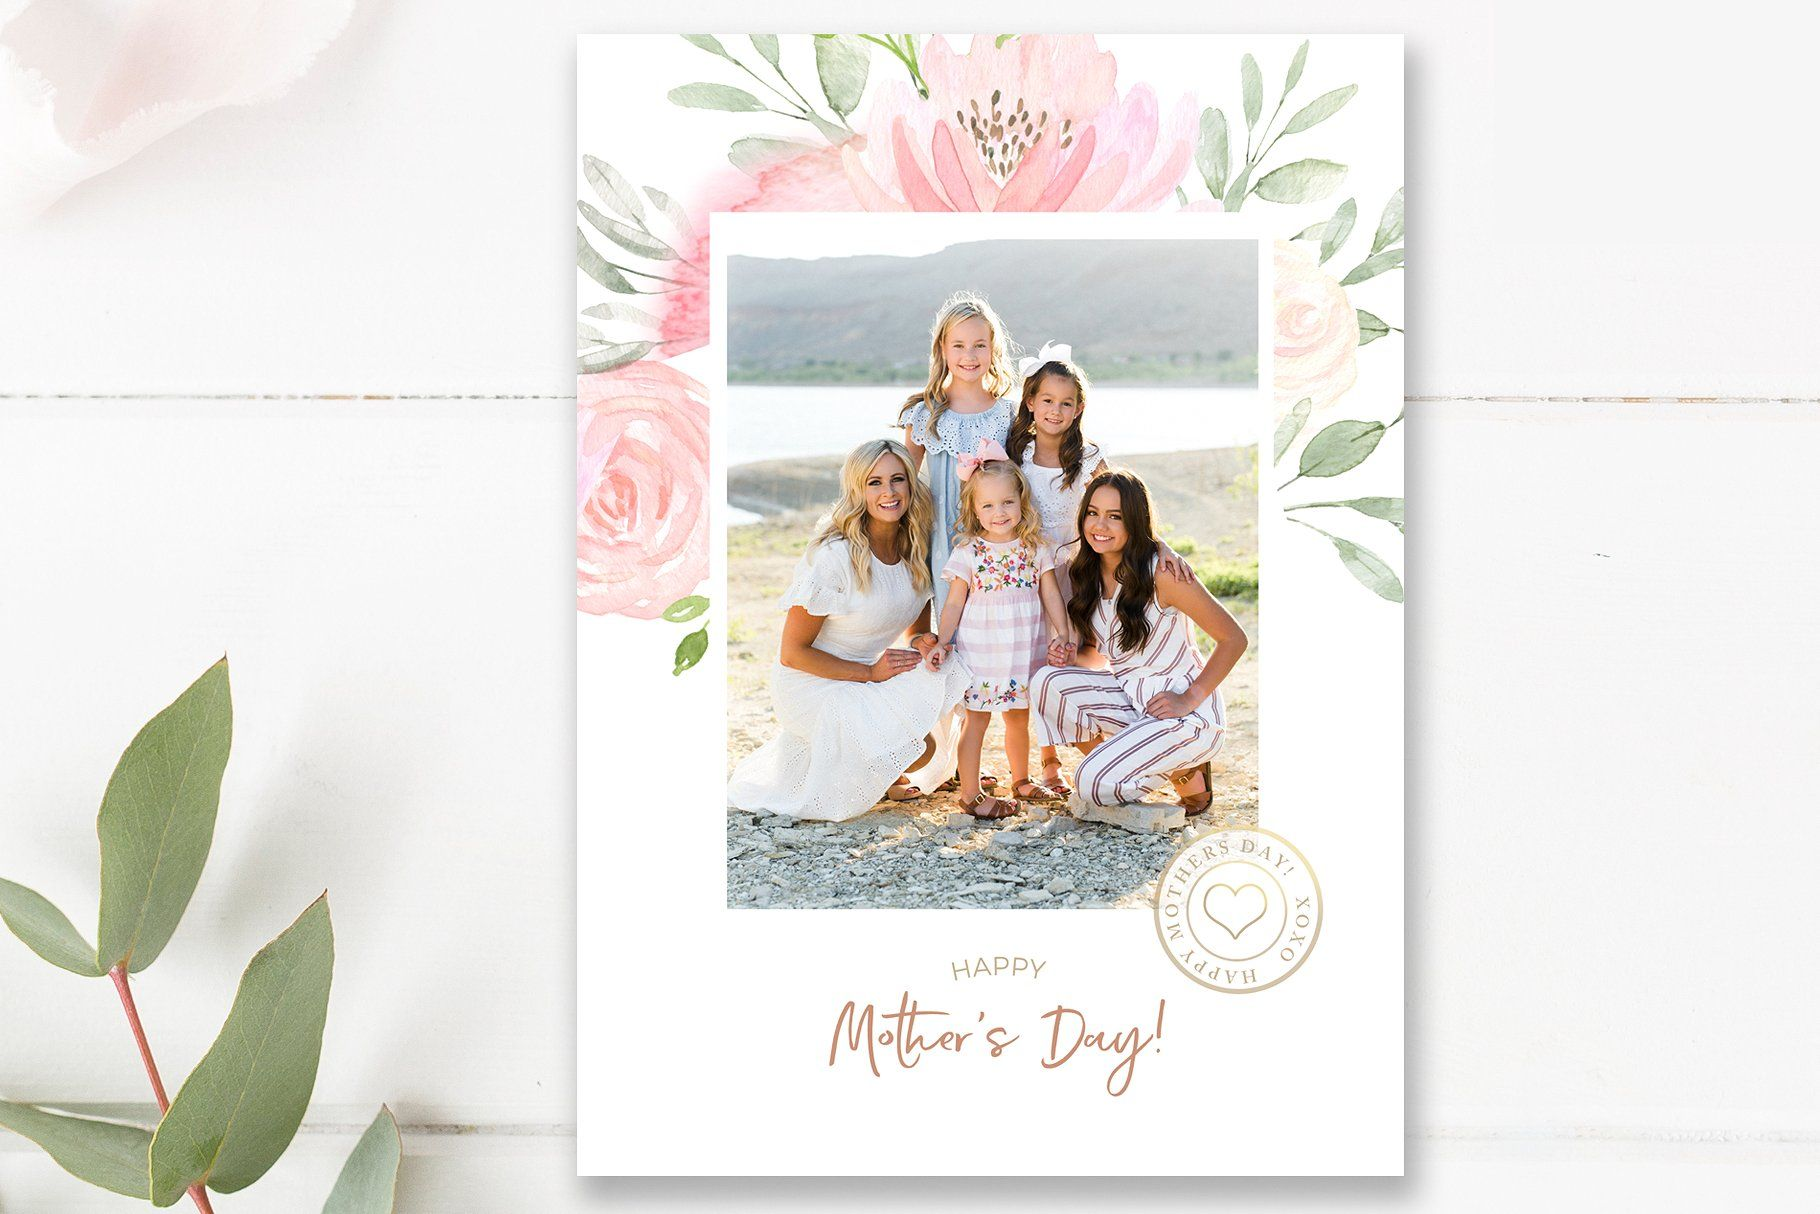 Mother S Day Photo Card Template Photo Card Template Personalized Mother S Day Gifts Card Template